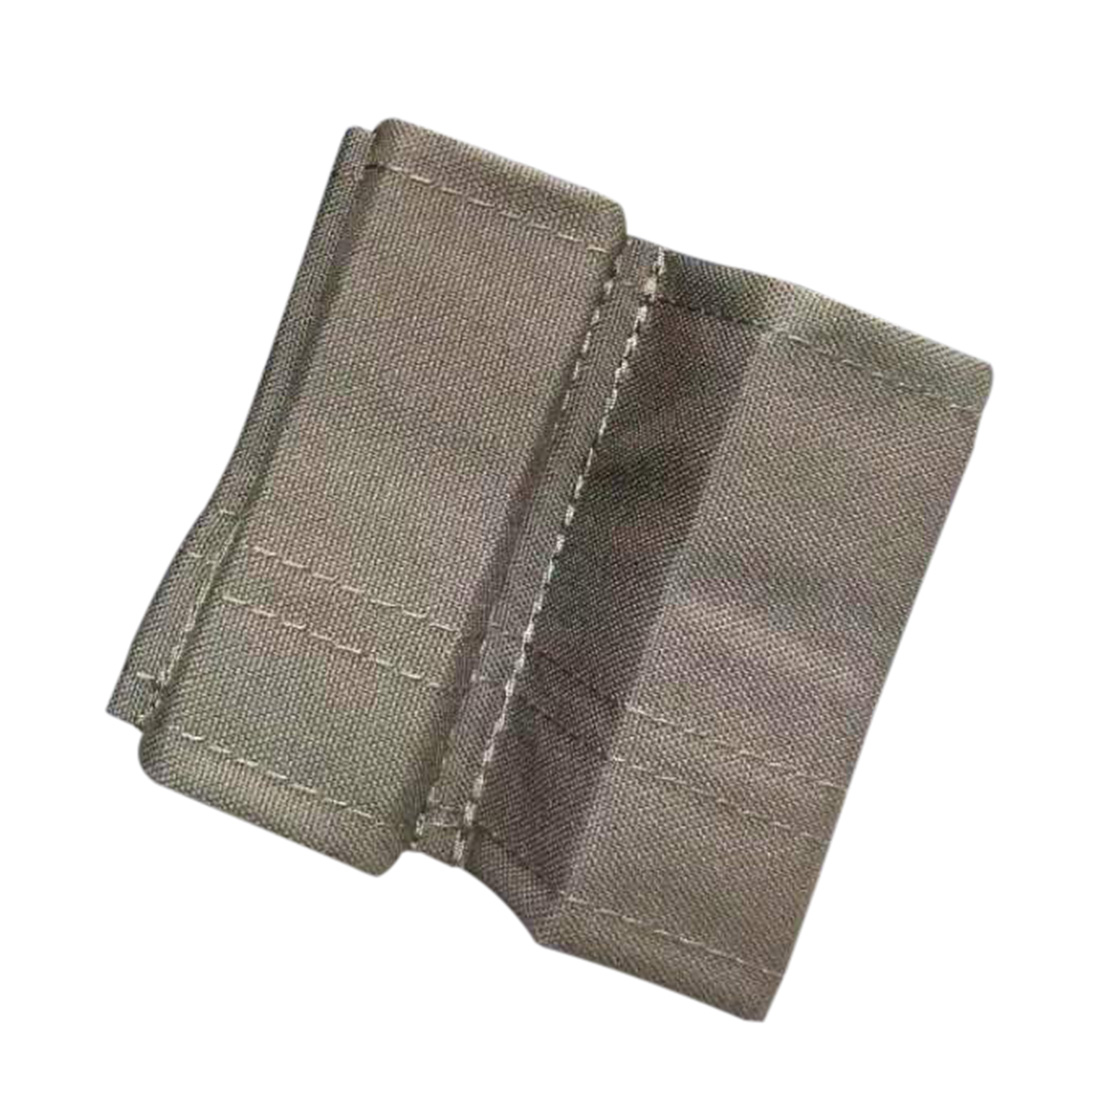 9mm KYWI Single/Double Magazine Pouch Outdoor Hunting Game Equipment Tactical Assessories